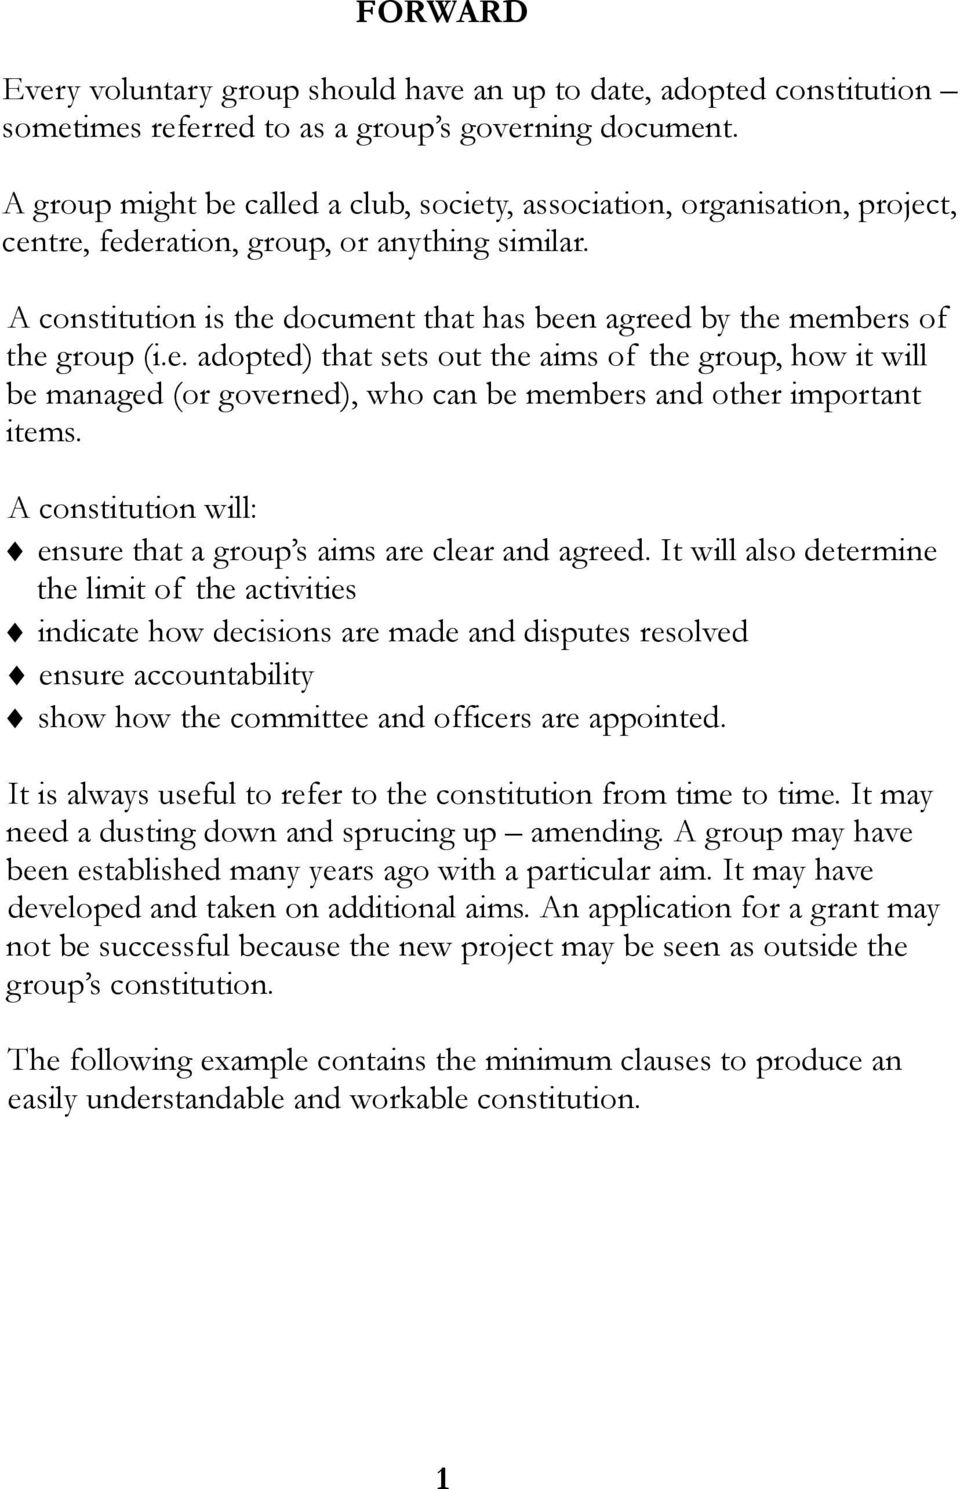 A constitution is the document that has been agreed by the members of the group (i.e. adopted) that sets out the aims of the group, how it will be managed (or governed), who can be members and other important items.